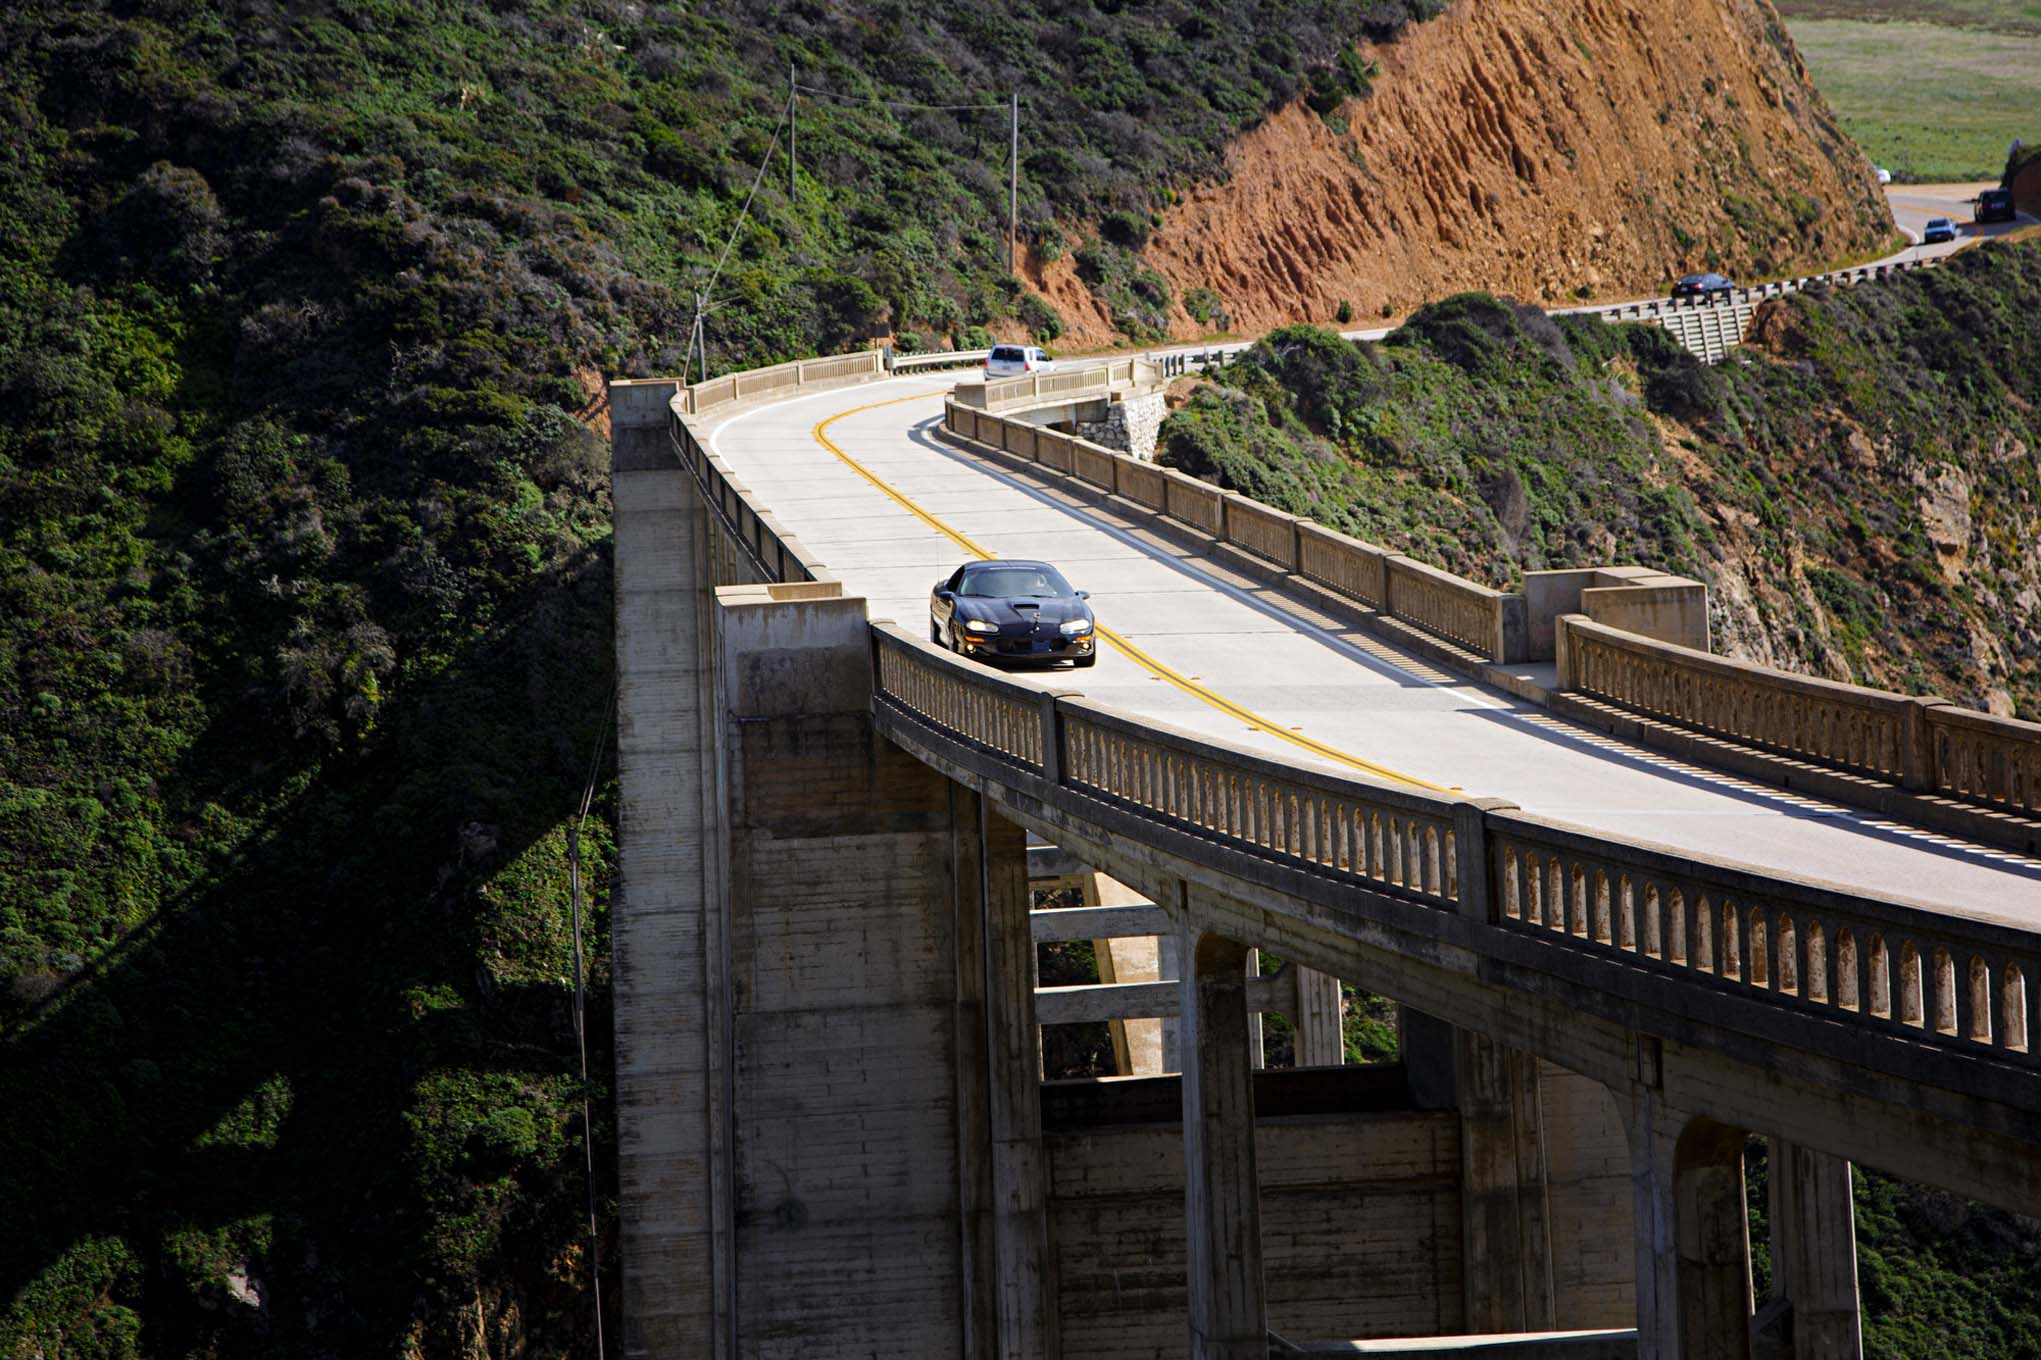 On the tail end of our Highway 1 drive we crossed Bixby Bridge, one of the most photographed structures on the route, and at this point we knew the hotel was mere miles away and we were ready to relax.